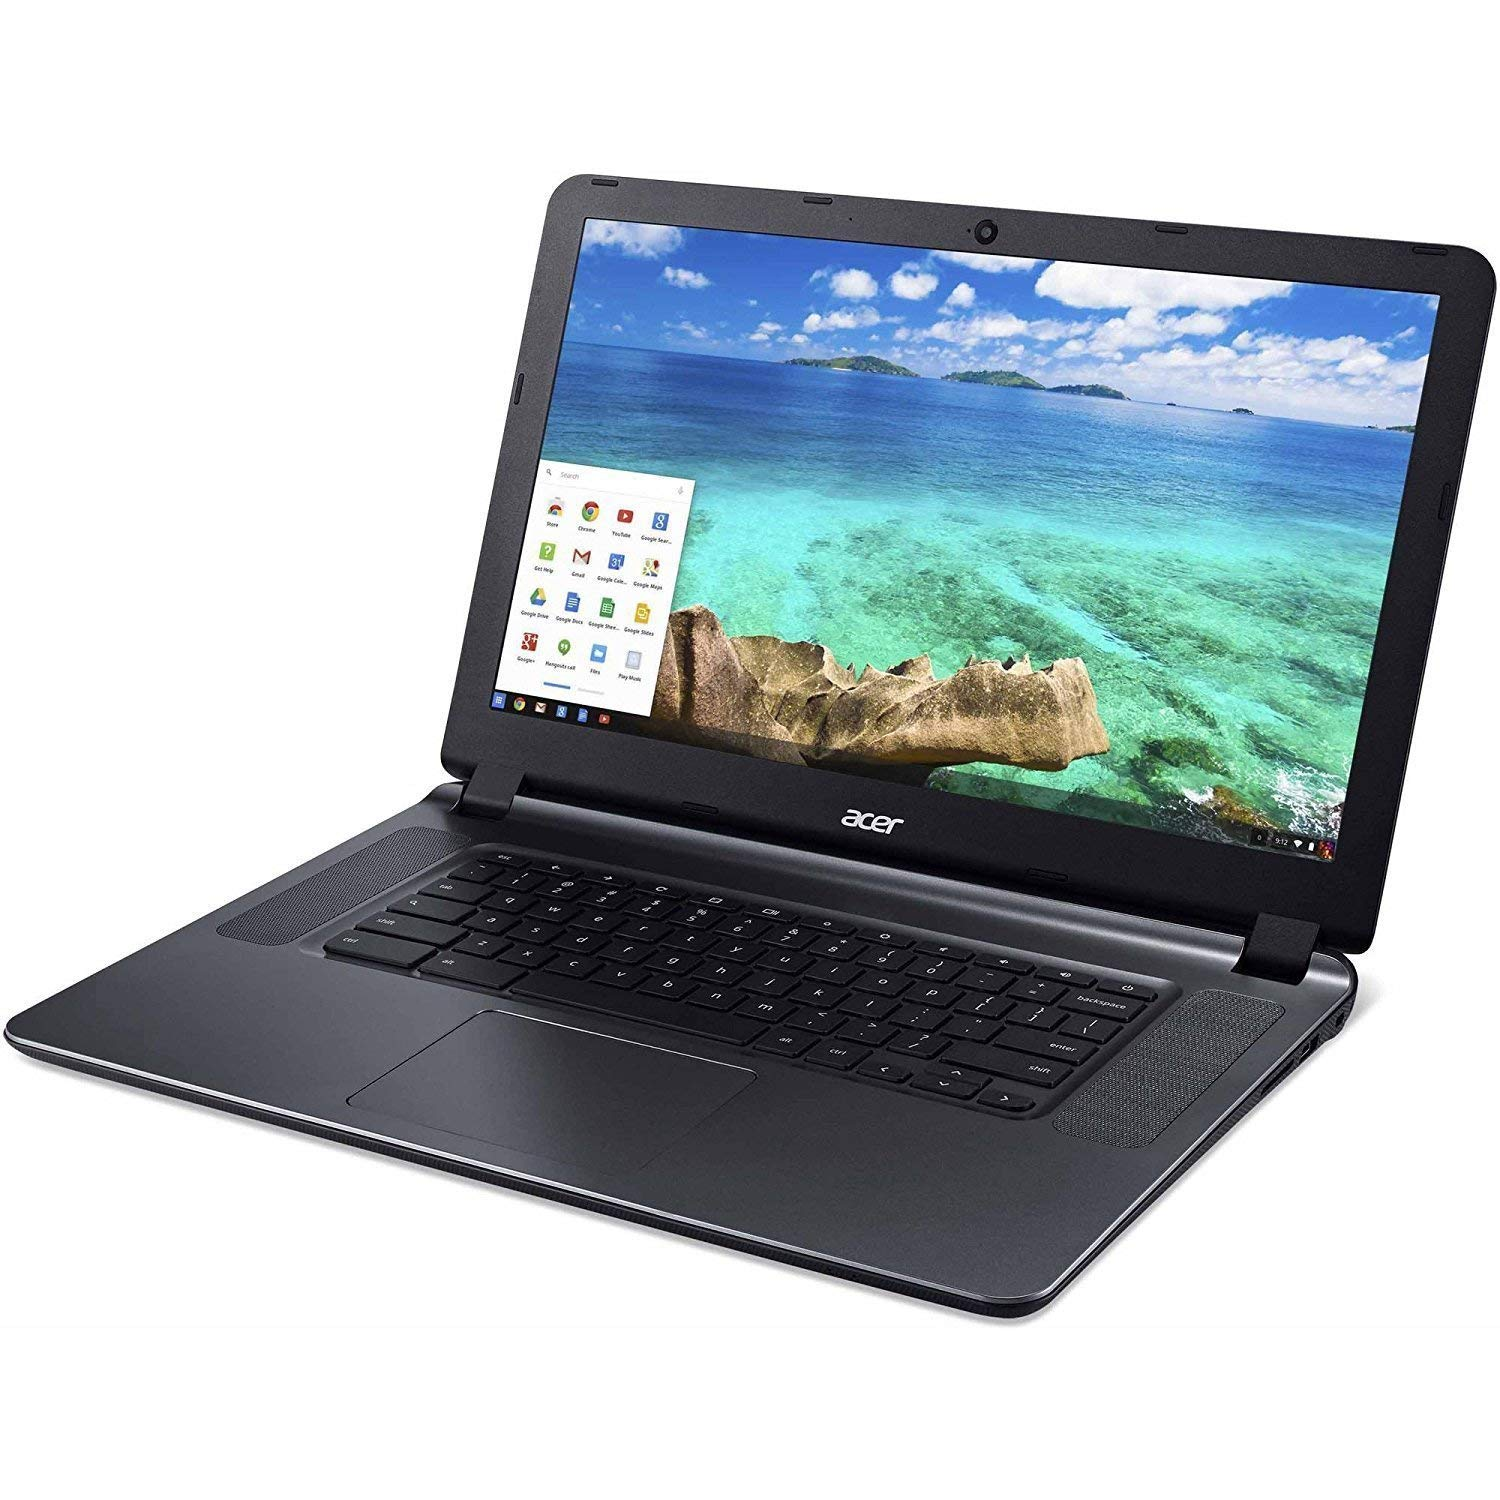 2018 Newest Acer CB3-532 15.6 HD Chromebook with 3x Faster WiFi, Intel Dual-Core Celeron N3060 upto 2.48GHz, 2GB RAM, 16GB SSD,HDMI,USB 3.0, Webcam, 12-Hrs Battery, Chrome OS Renewed